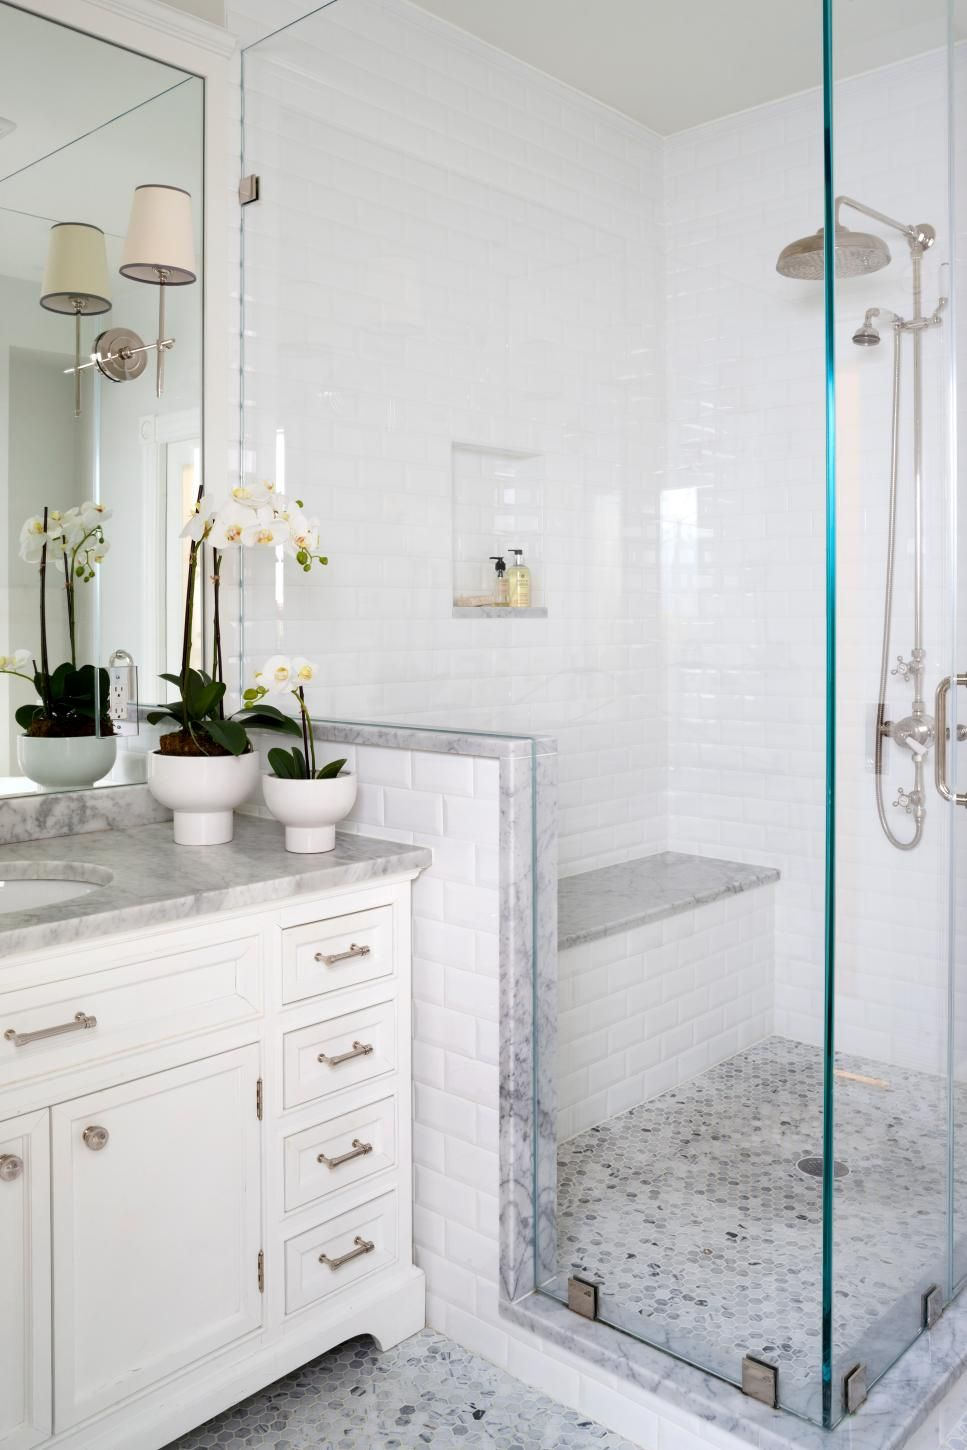 pictures to hang in master bathroom%0A A glassenclosed shower is fitted with a bench is this traditional master  bathroom space